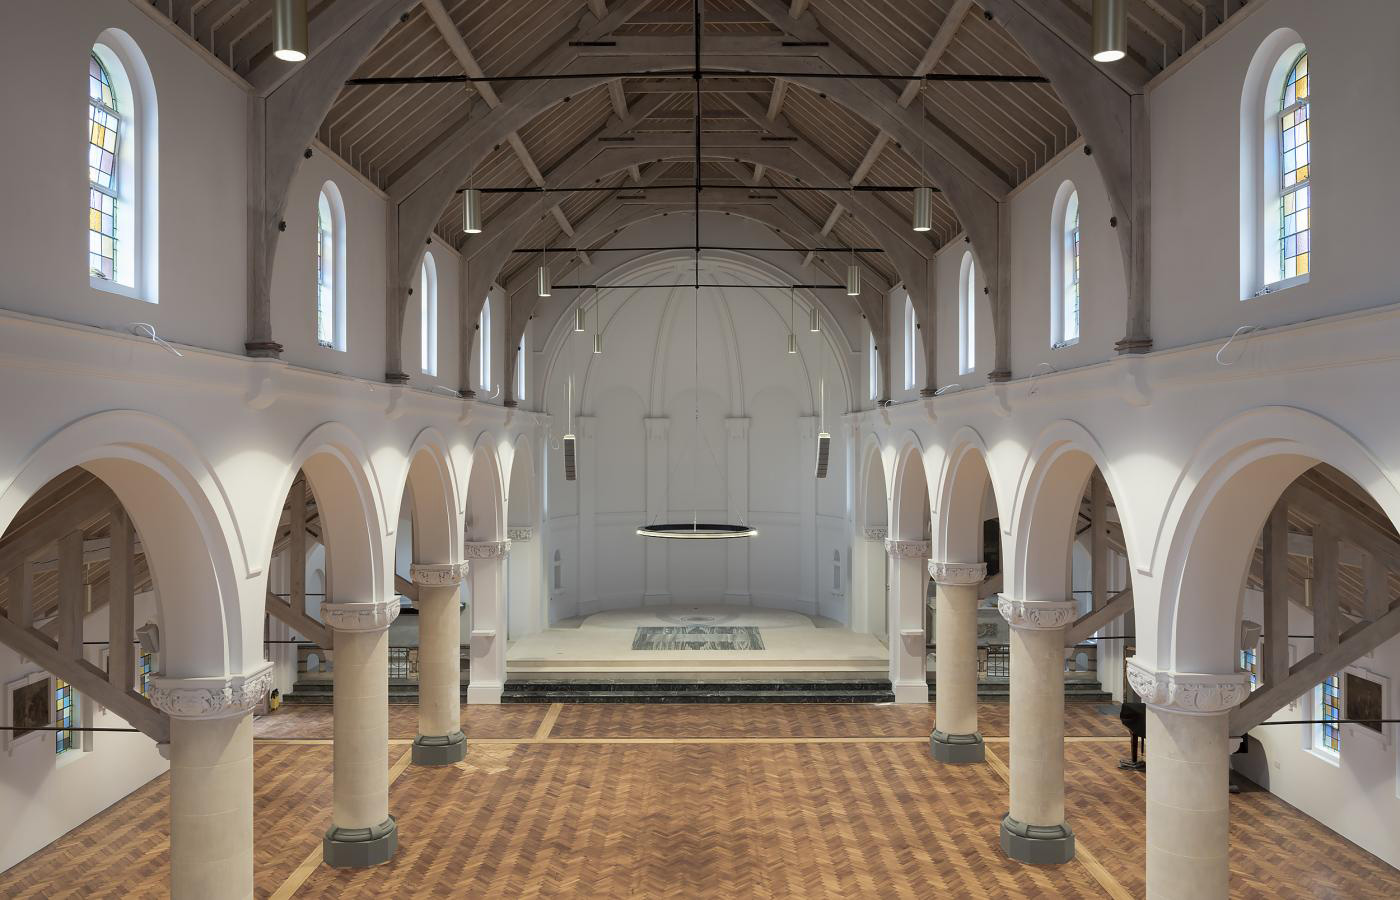 St Augustines Church, refurbished by Roz Barr